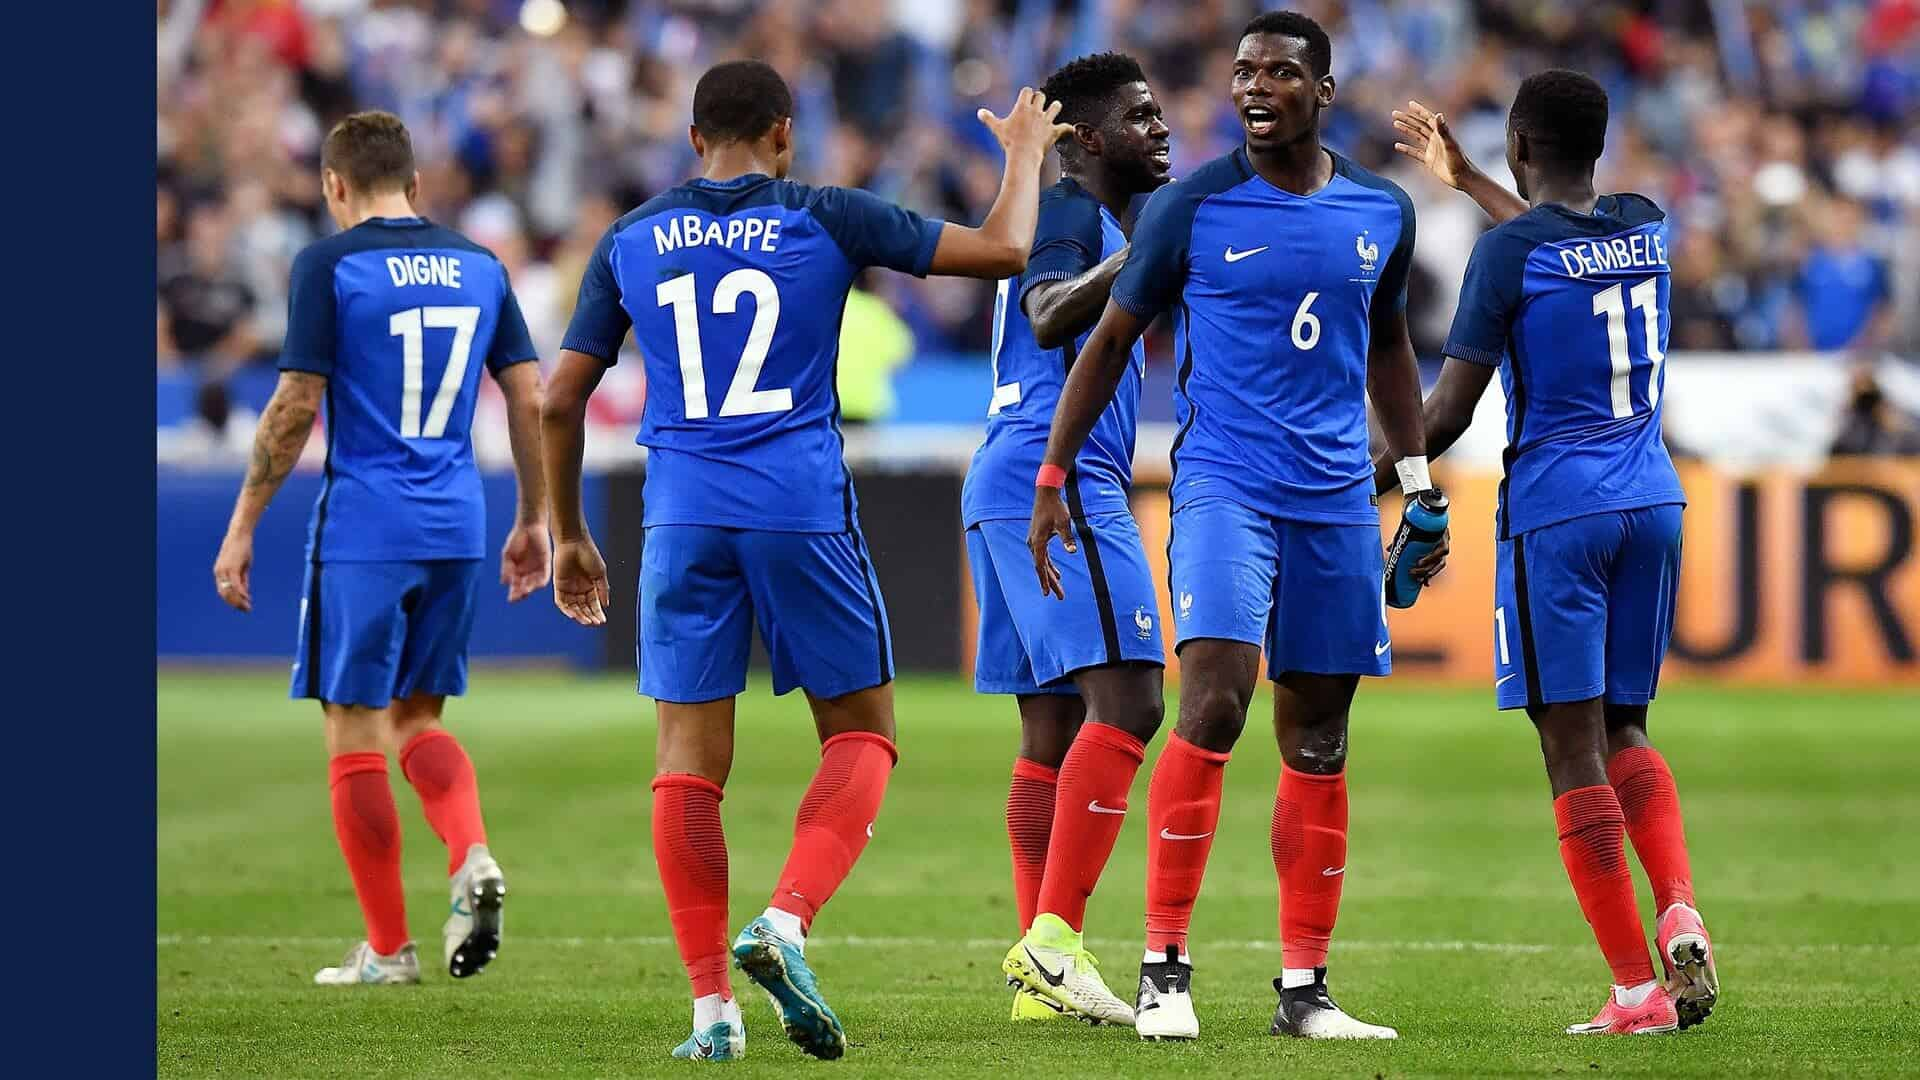 FRANCE NATIONAL FC SOCCER TEAM 2019